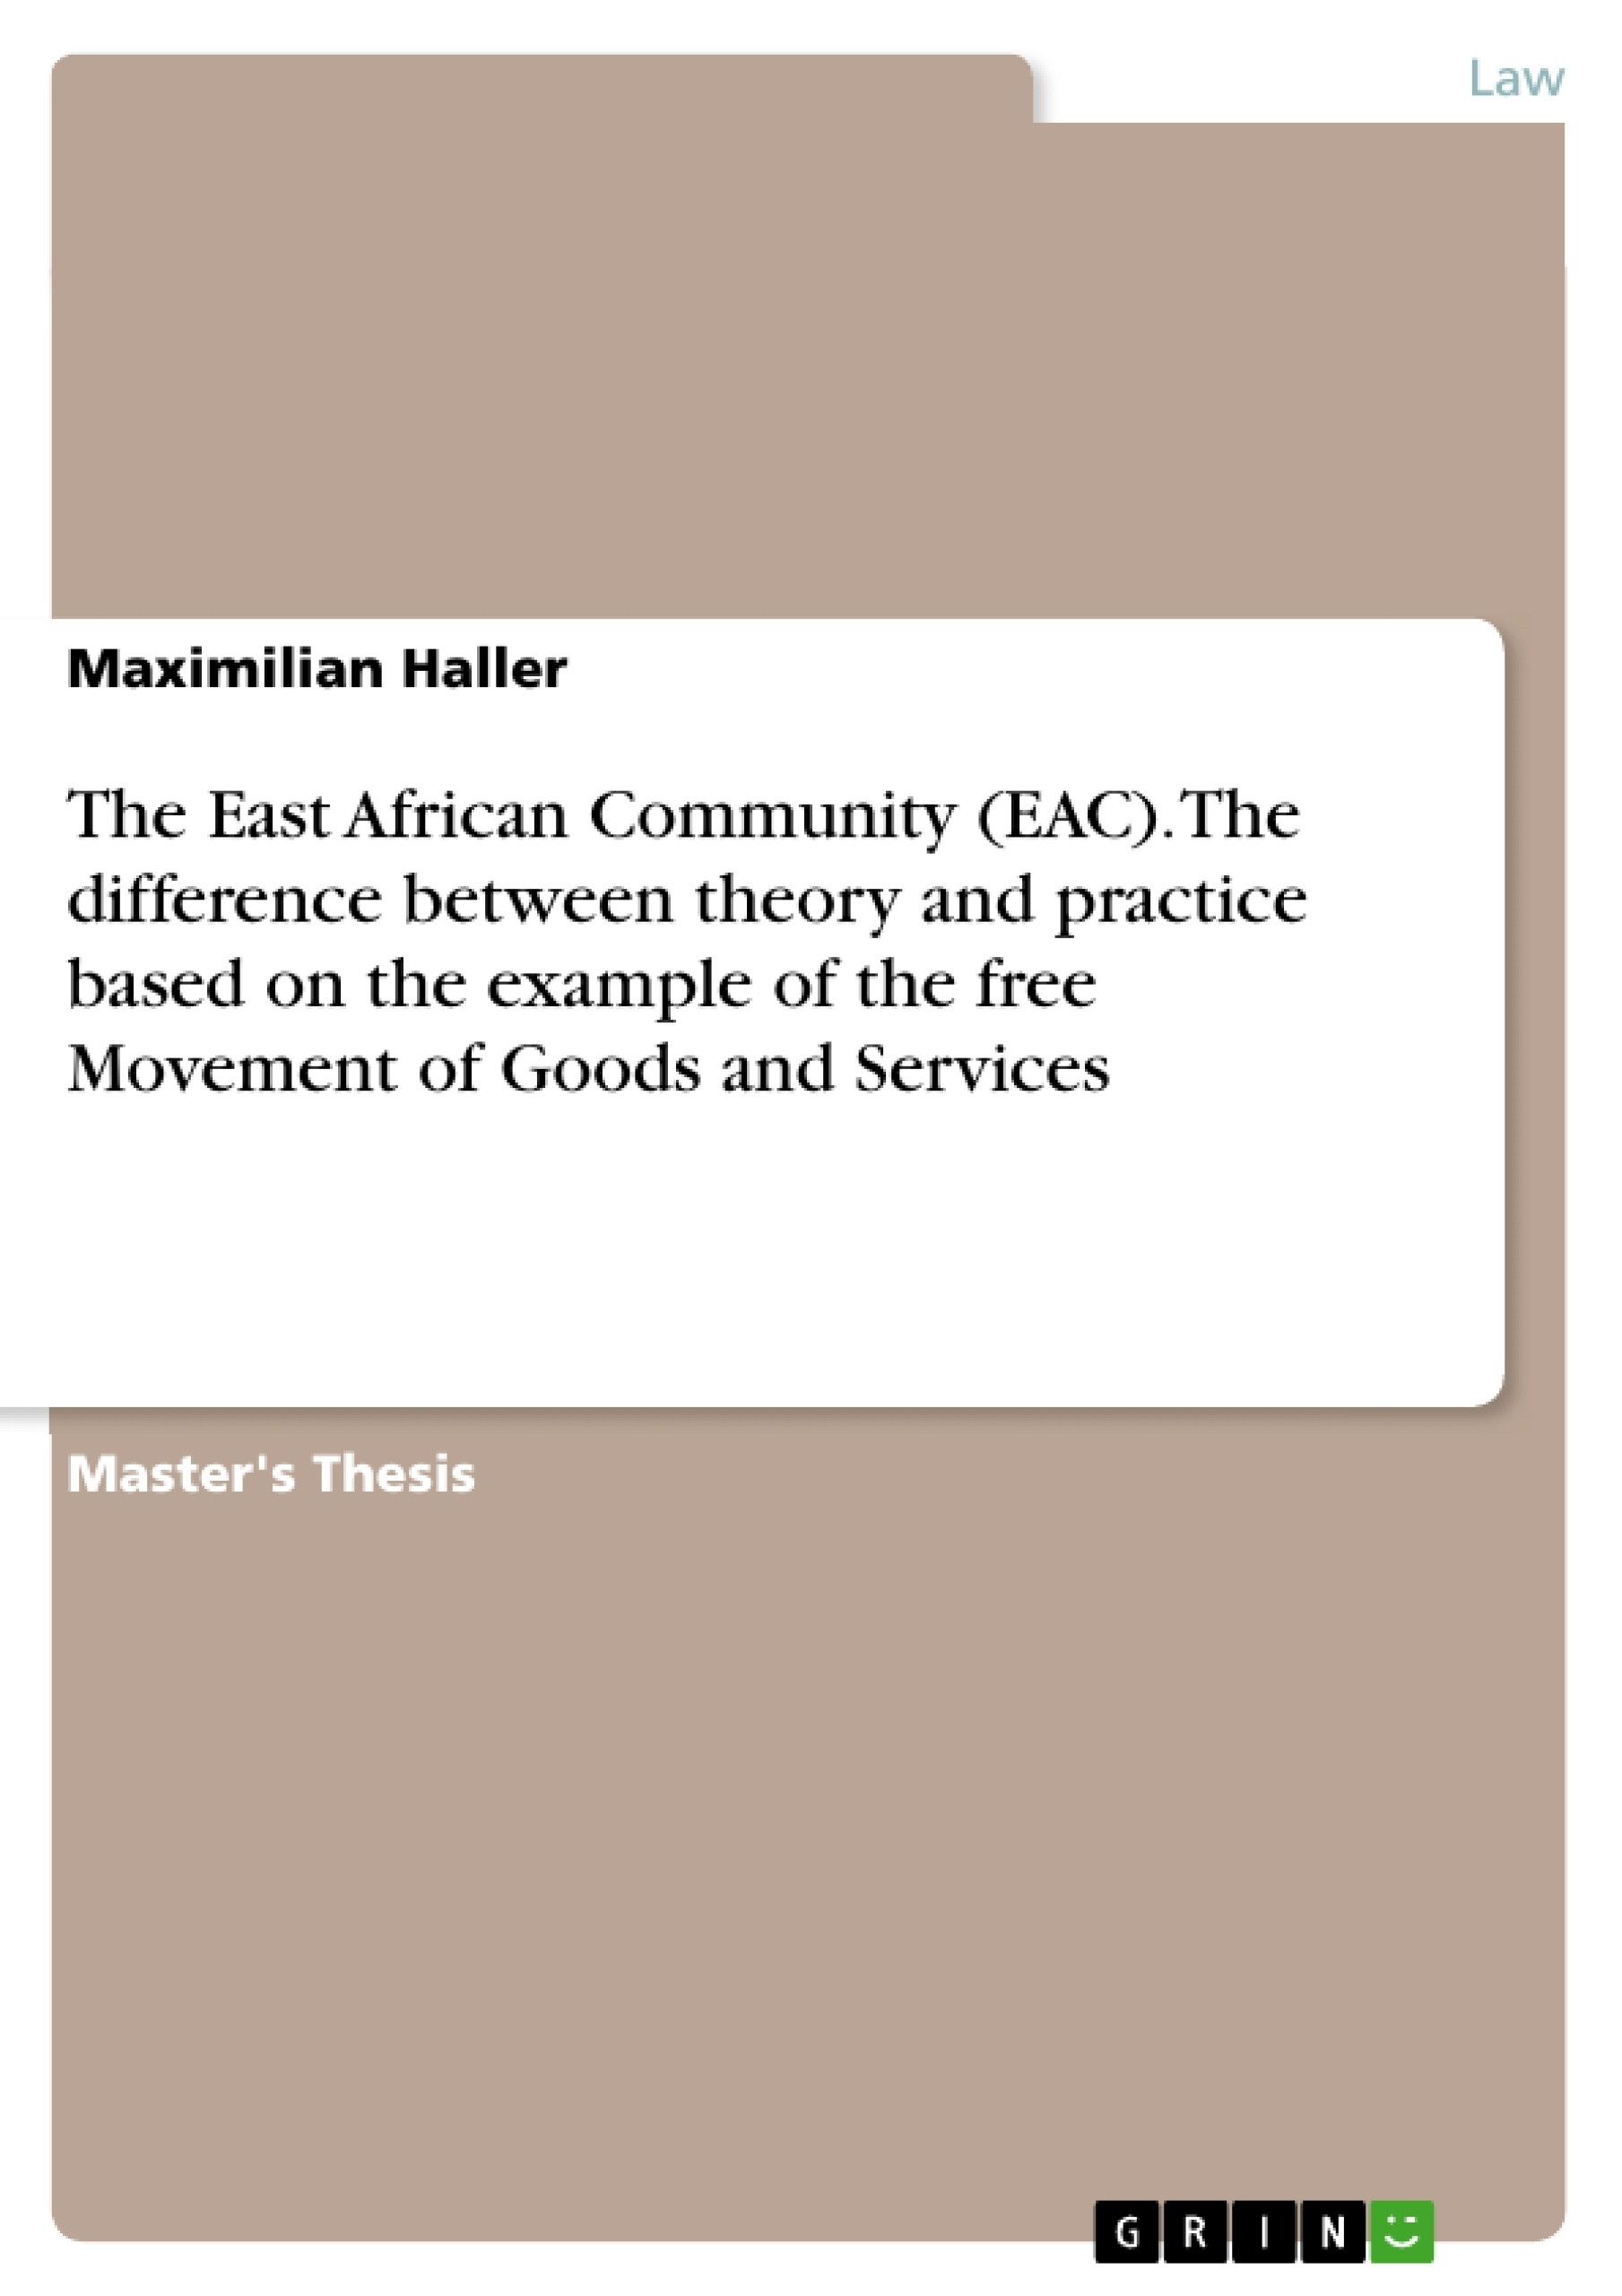 Title: The East African Community (EAC). The difference between theory and practice based on the example of the free Movement of Goods and Services